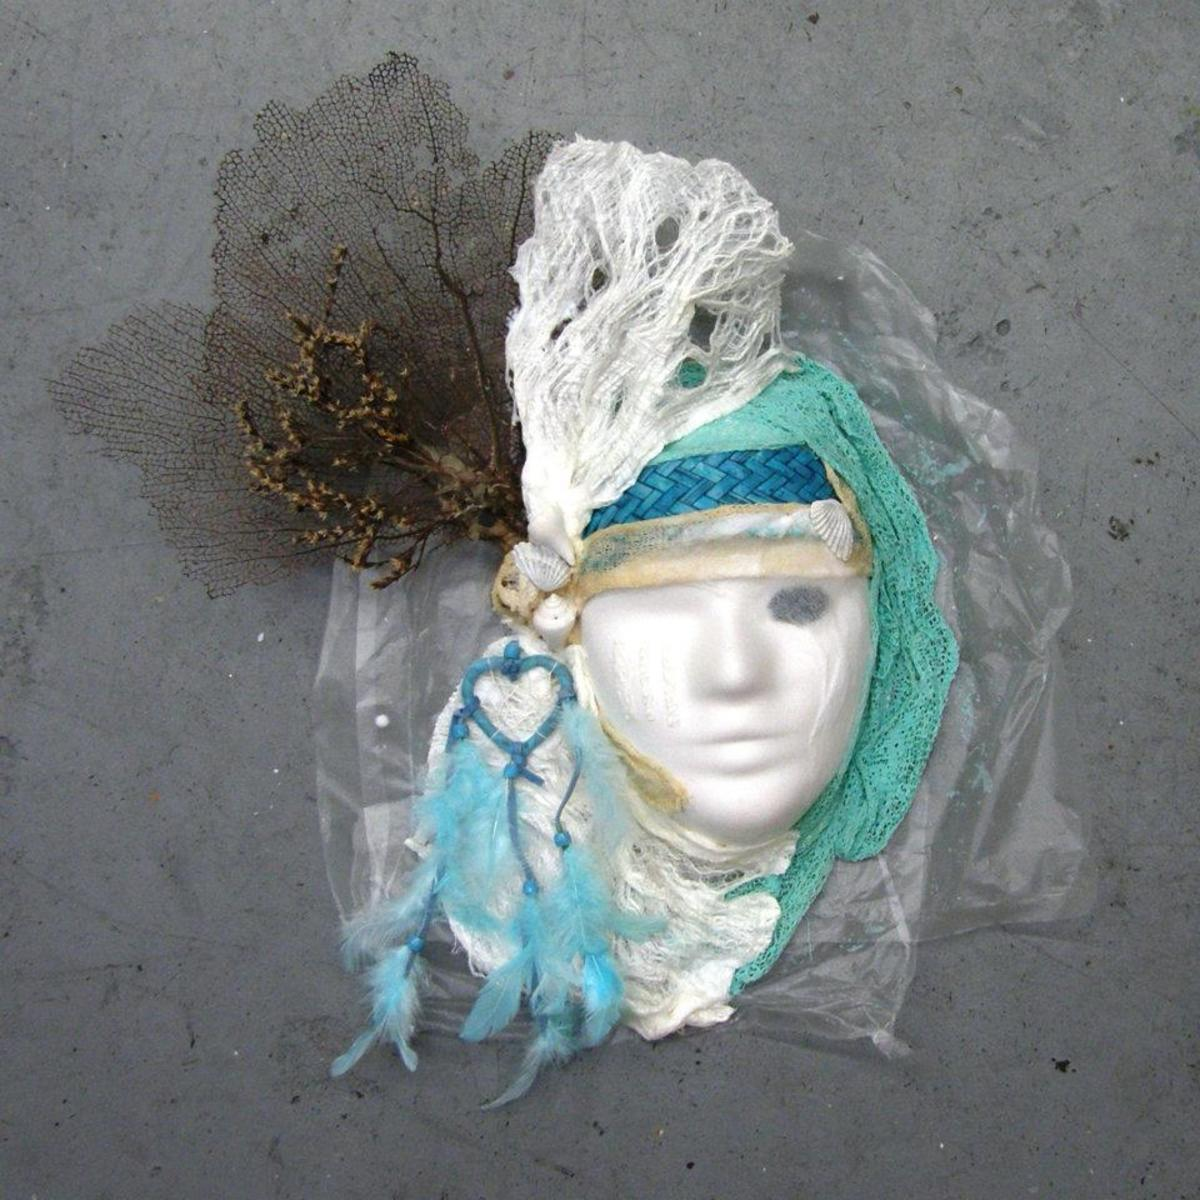 Mask created using Paverpol and a paper mask, tree bark, beads and marine materials.